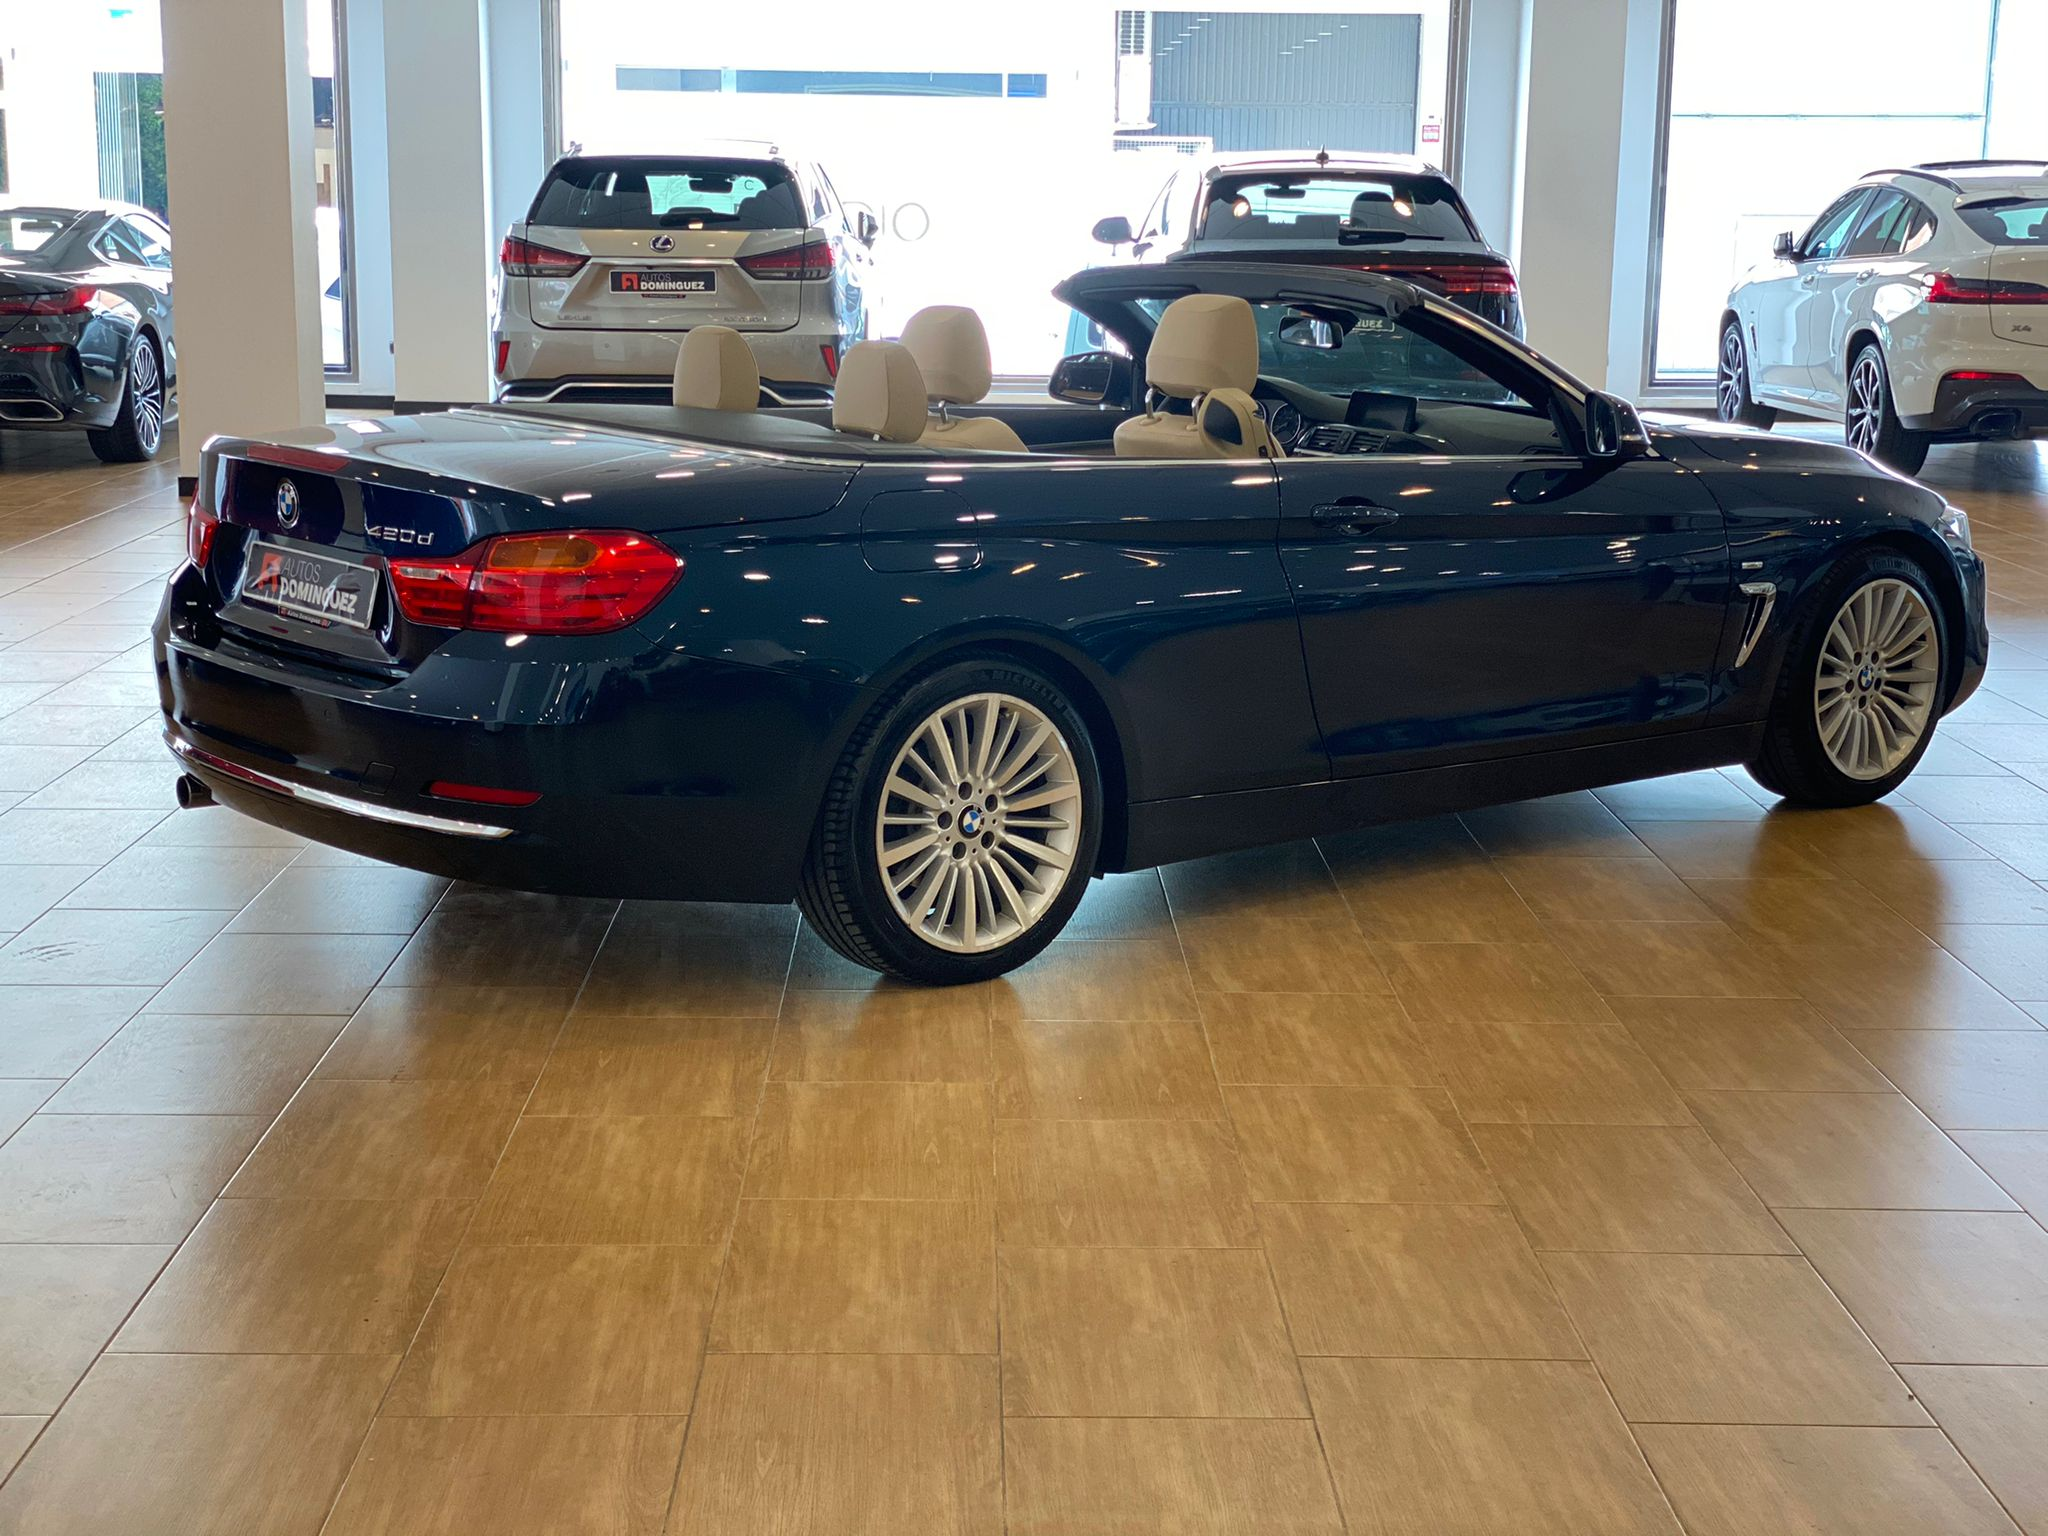 BMW SERIE 4 420dA CABRIO LUXURY 184 CV 6